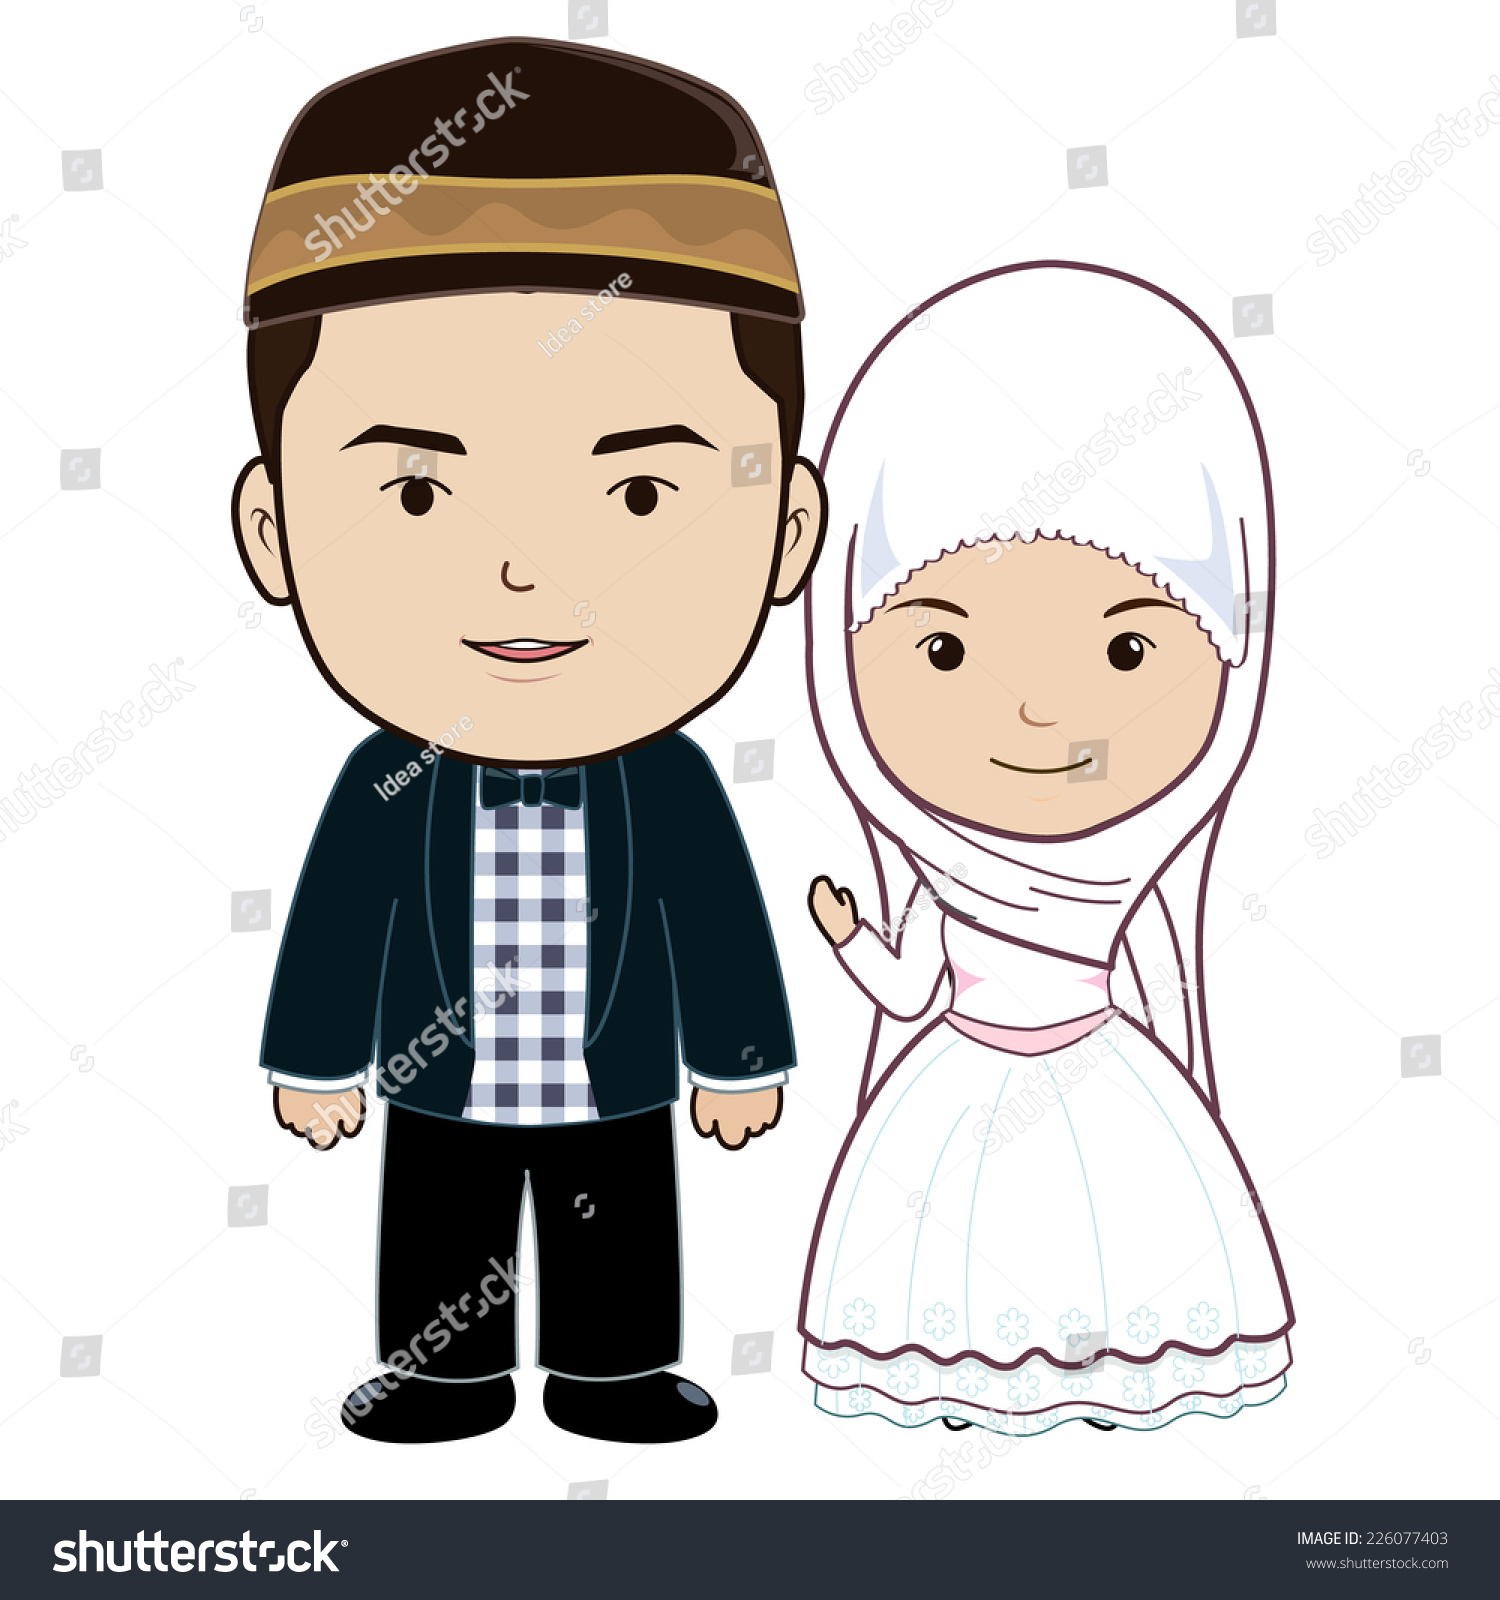 little elm muslim dating site Meet little elm singles online & chat in the forums dhu is a 100% free dating site to find personals & casual encounters in little elm.